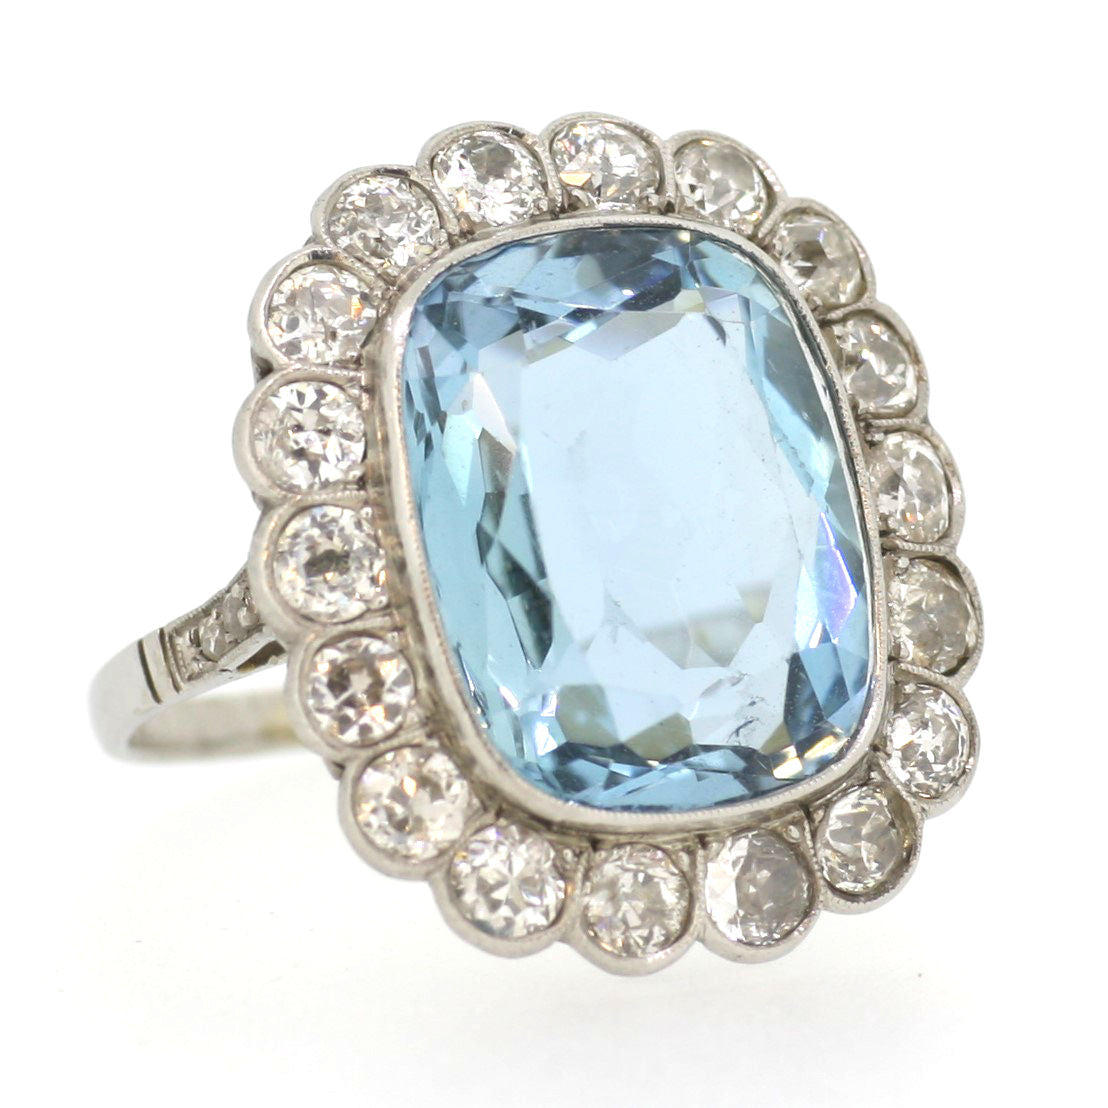 Vintage Aquamarine & Old Cut Diamond Cluster Ring in platinum